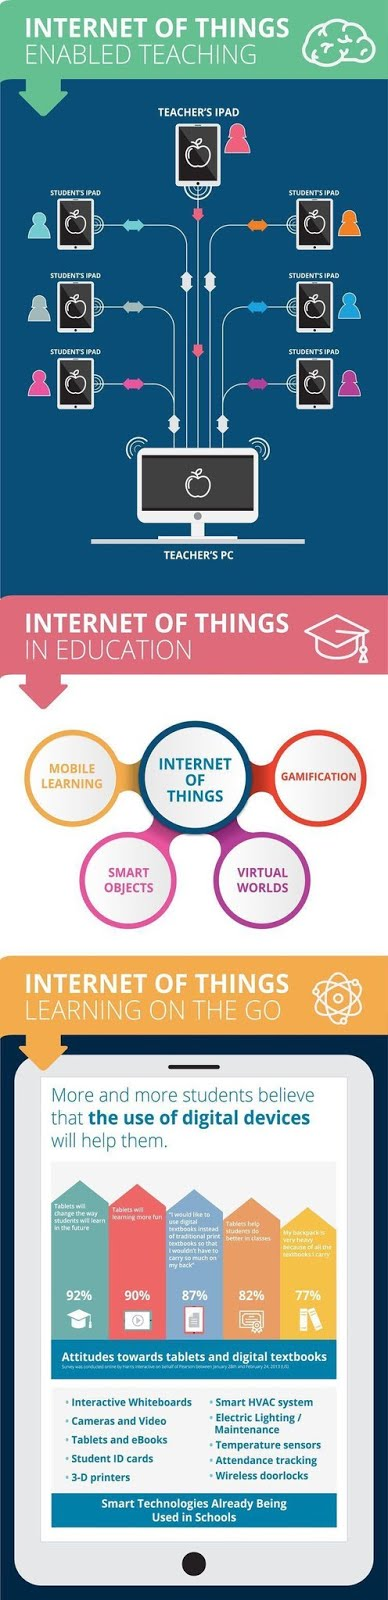 #IoT enabled teaching in #education